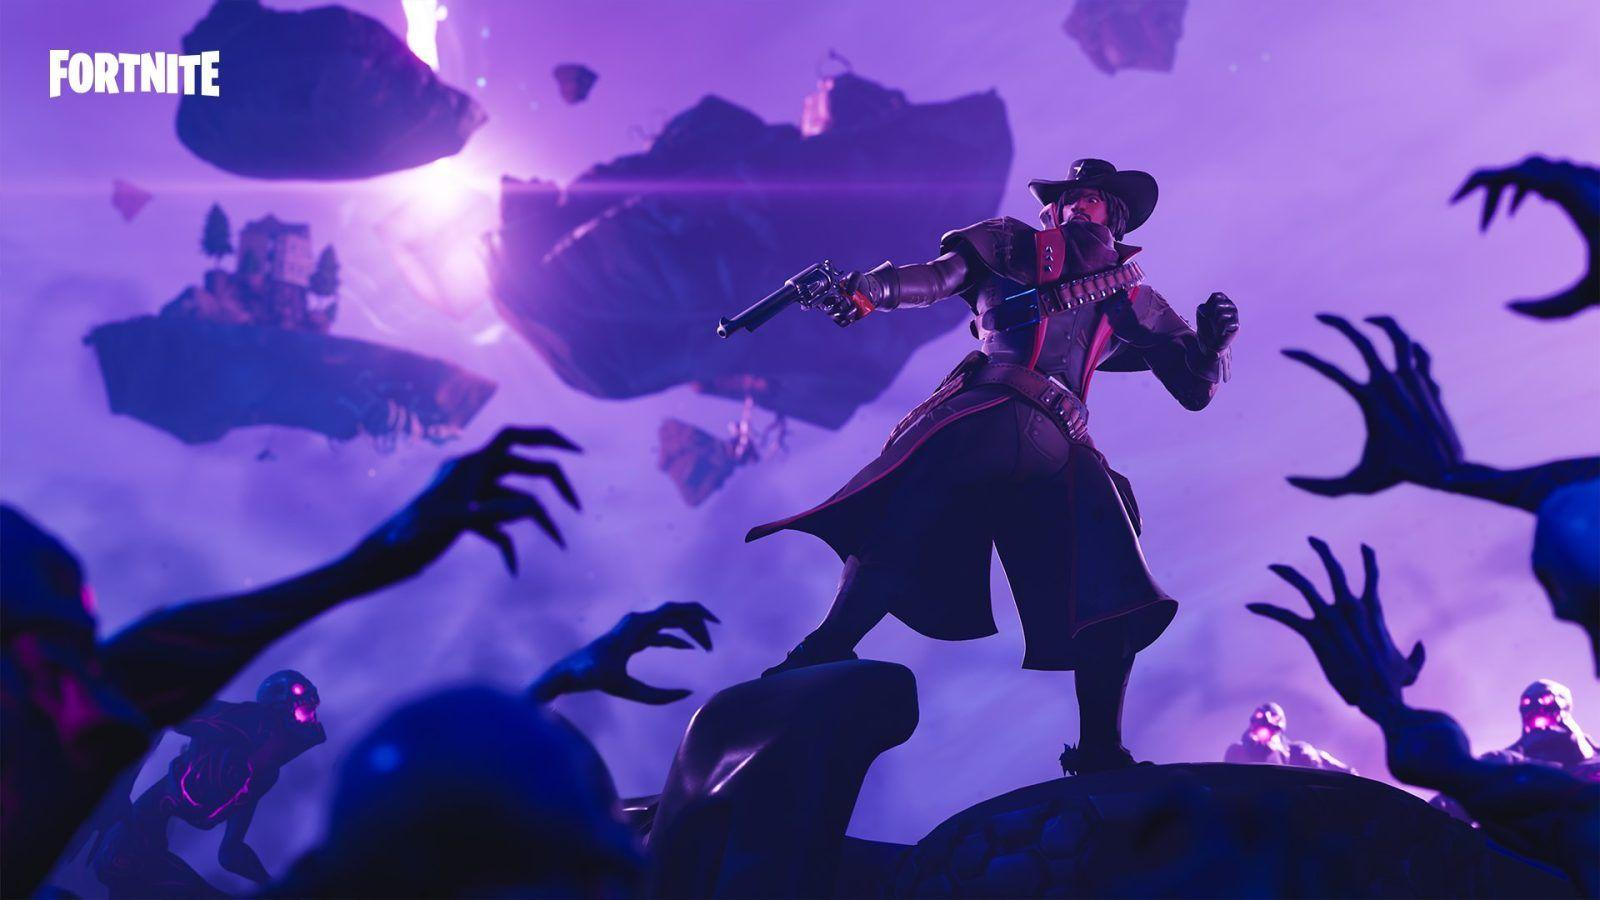 Fortnite for iOS updated with 'Fortnitemares' Halloween content